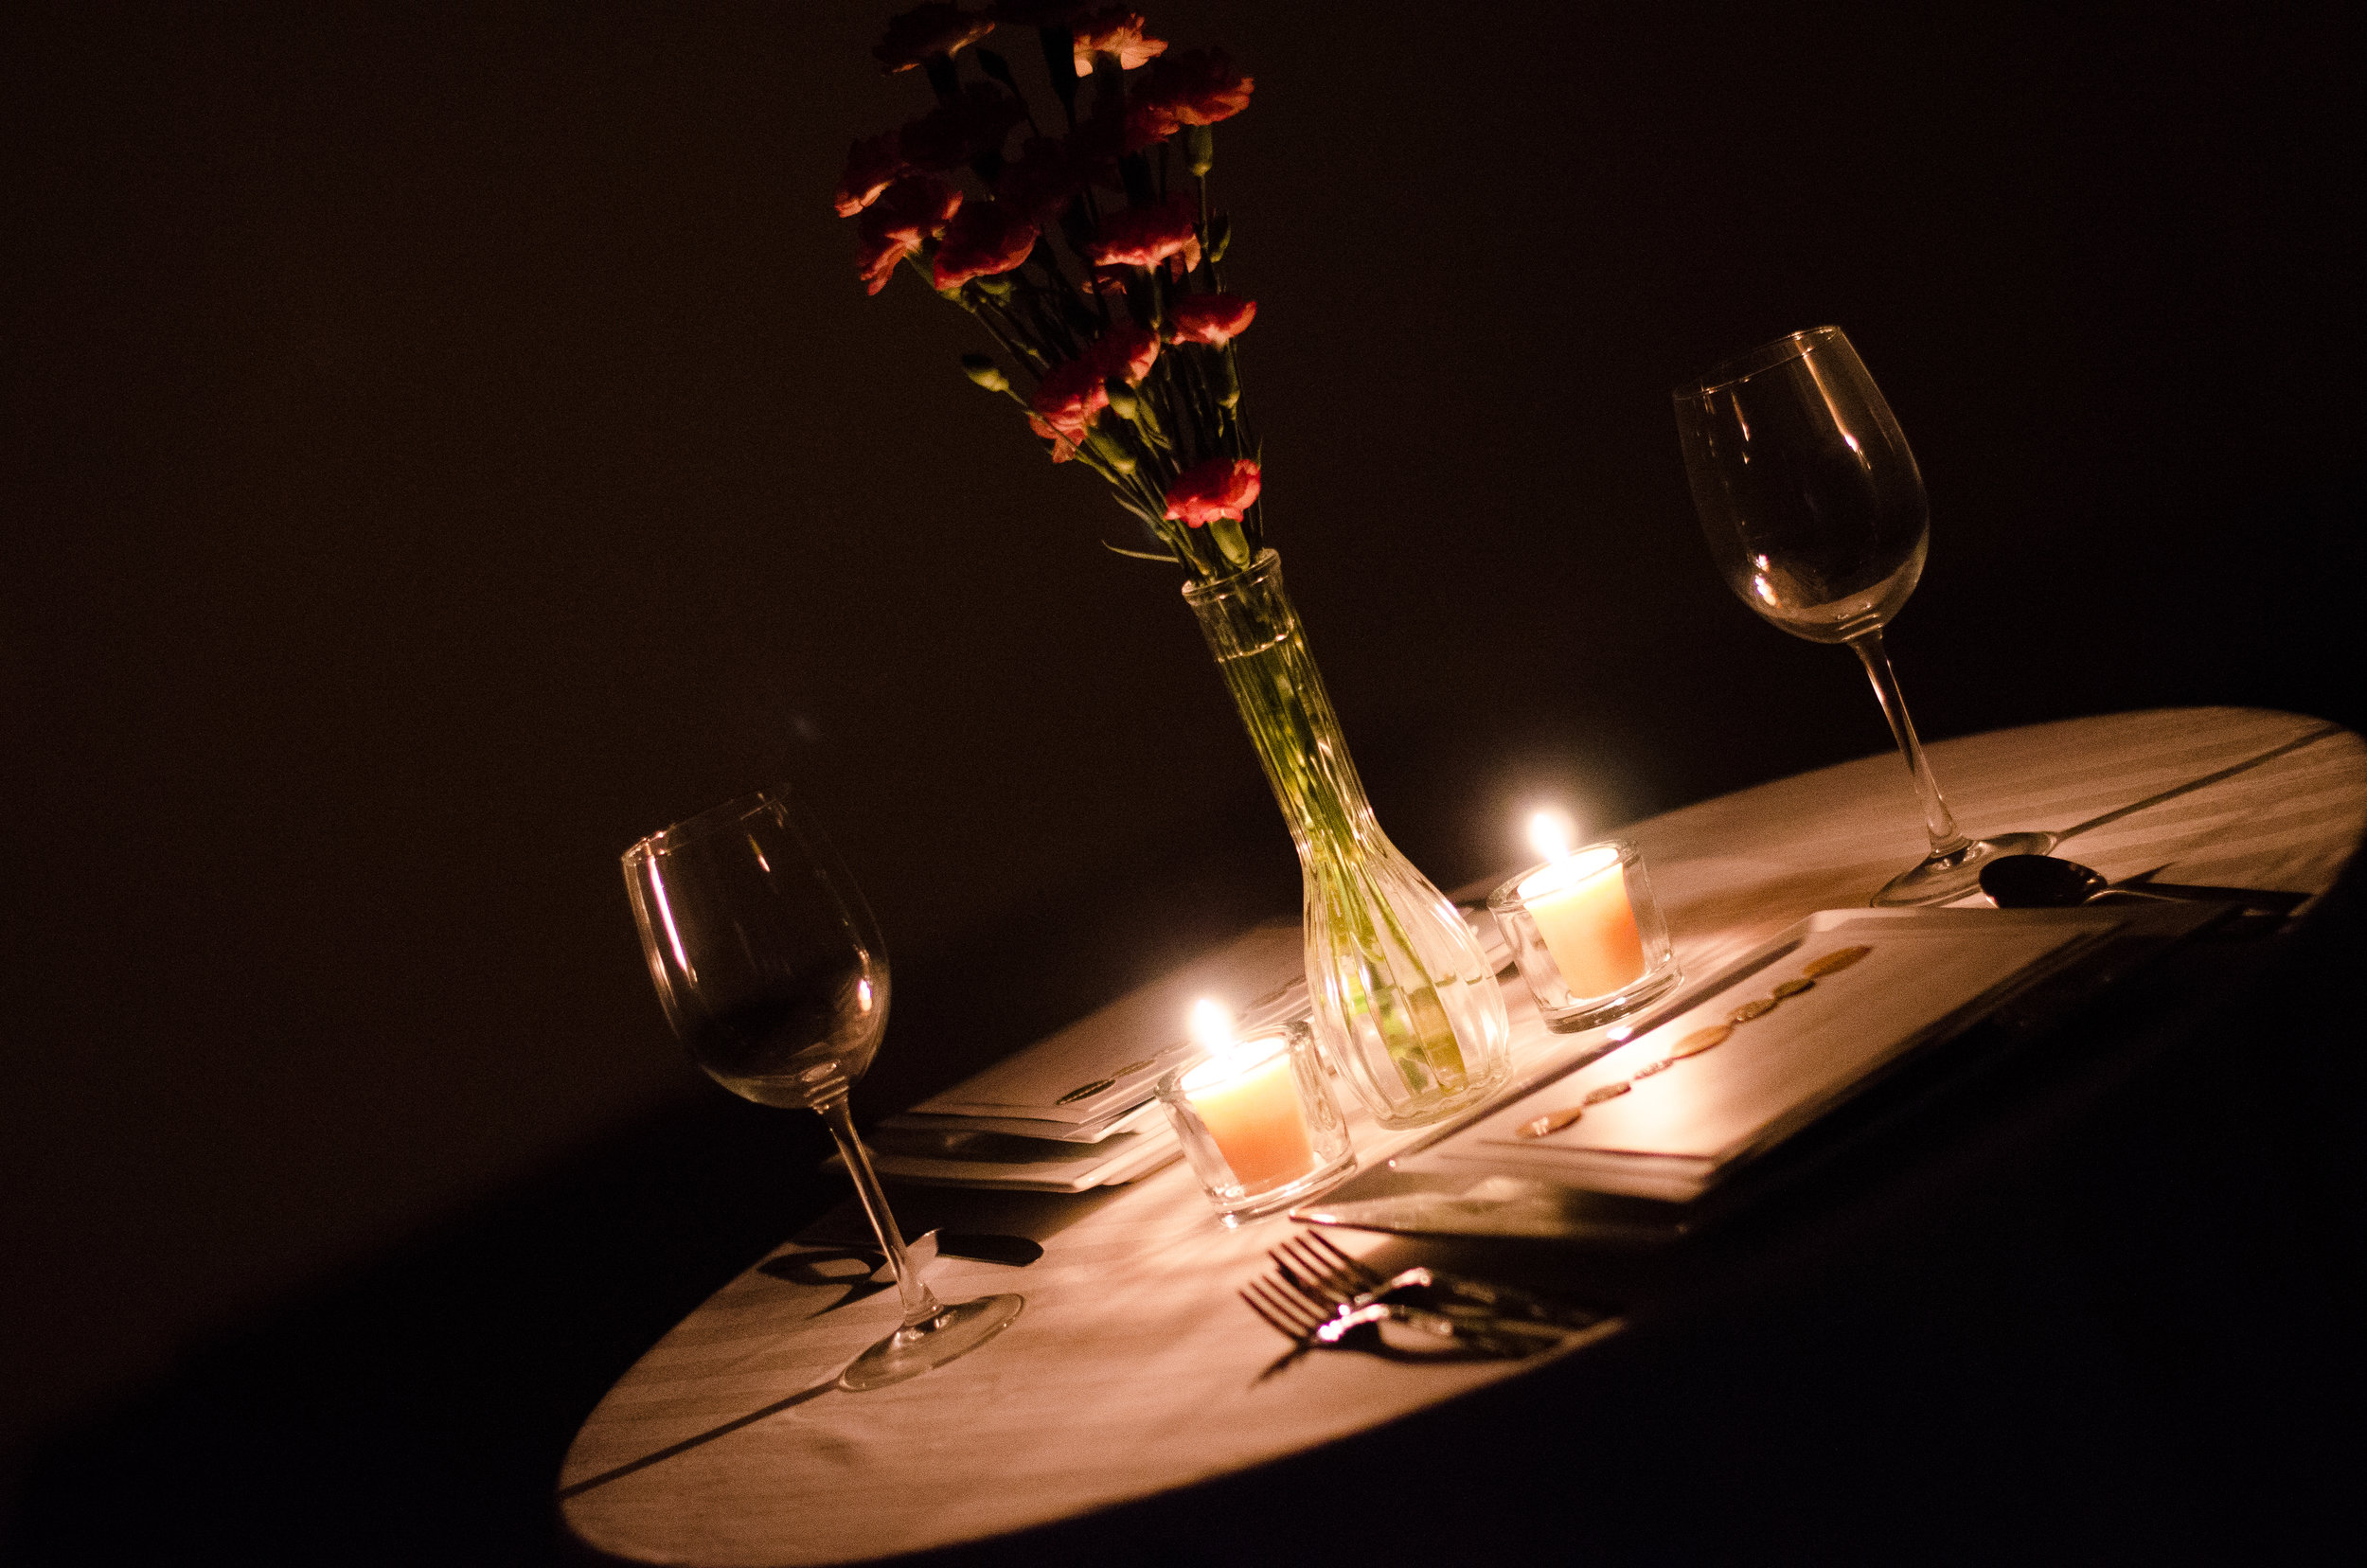 ANNIVERSARies -  For all anniversary dinner or party pricing information, please click below and schedule your unique consultation.